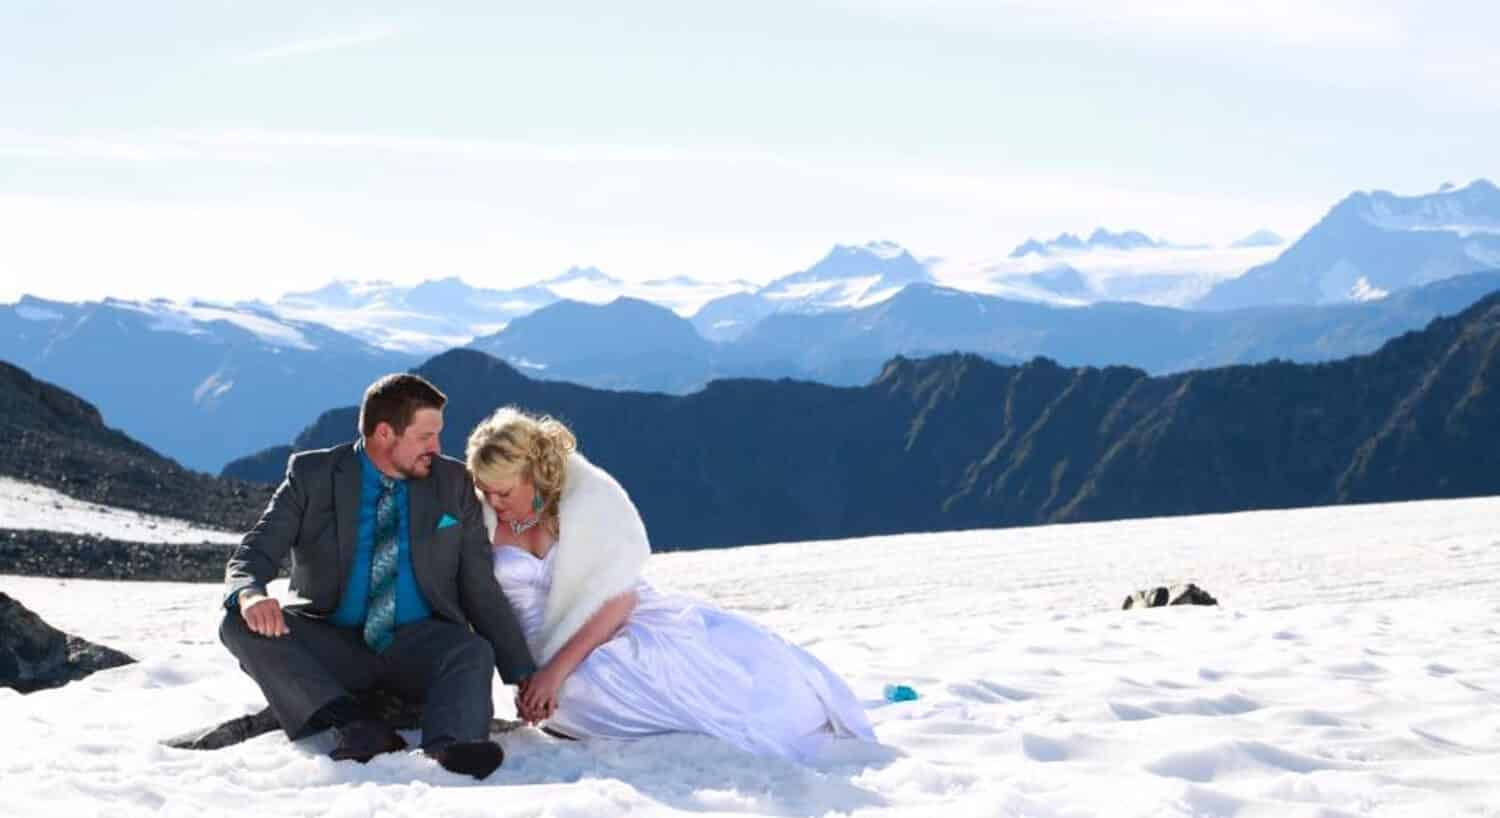 bride in wedding gown and groom in gray suite sitting in snow with snow-capped mountains in distance